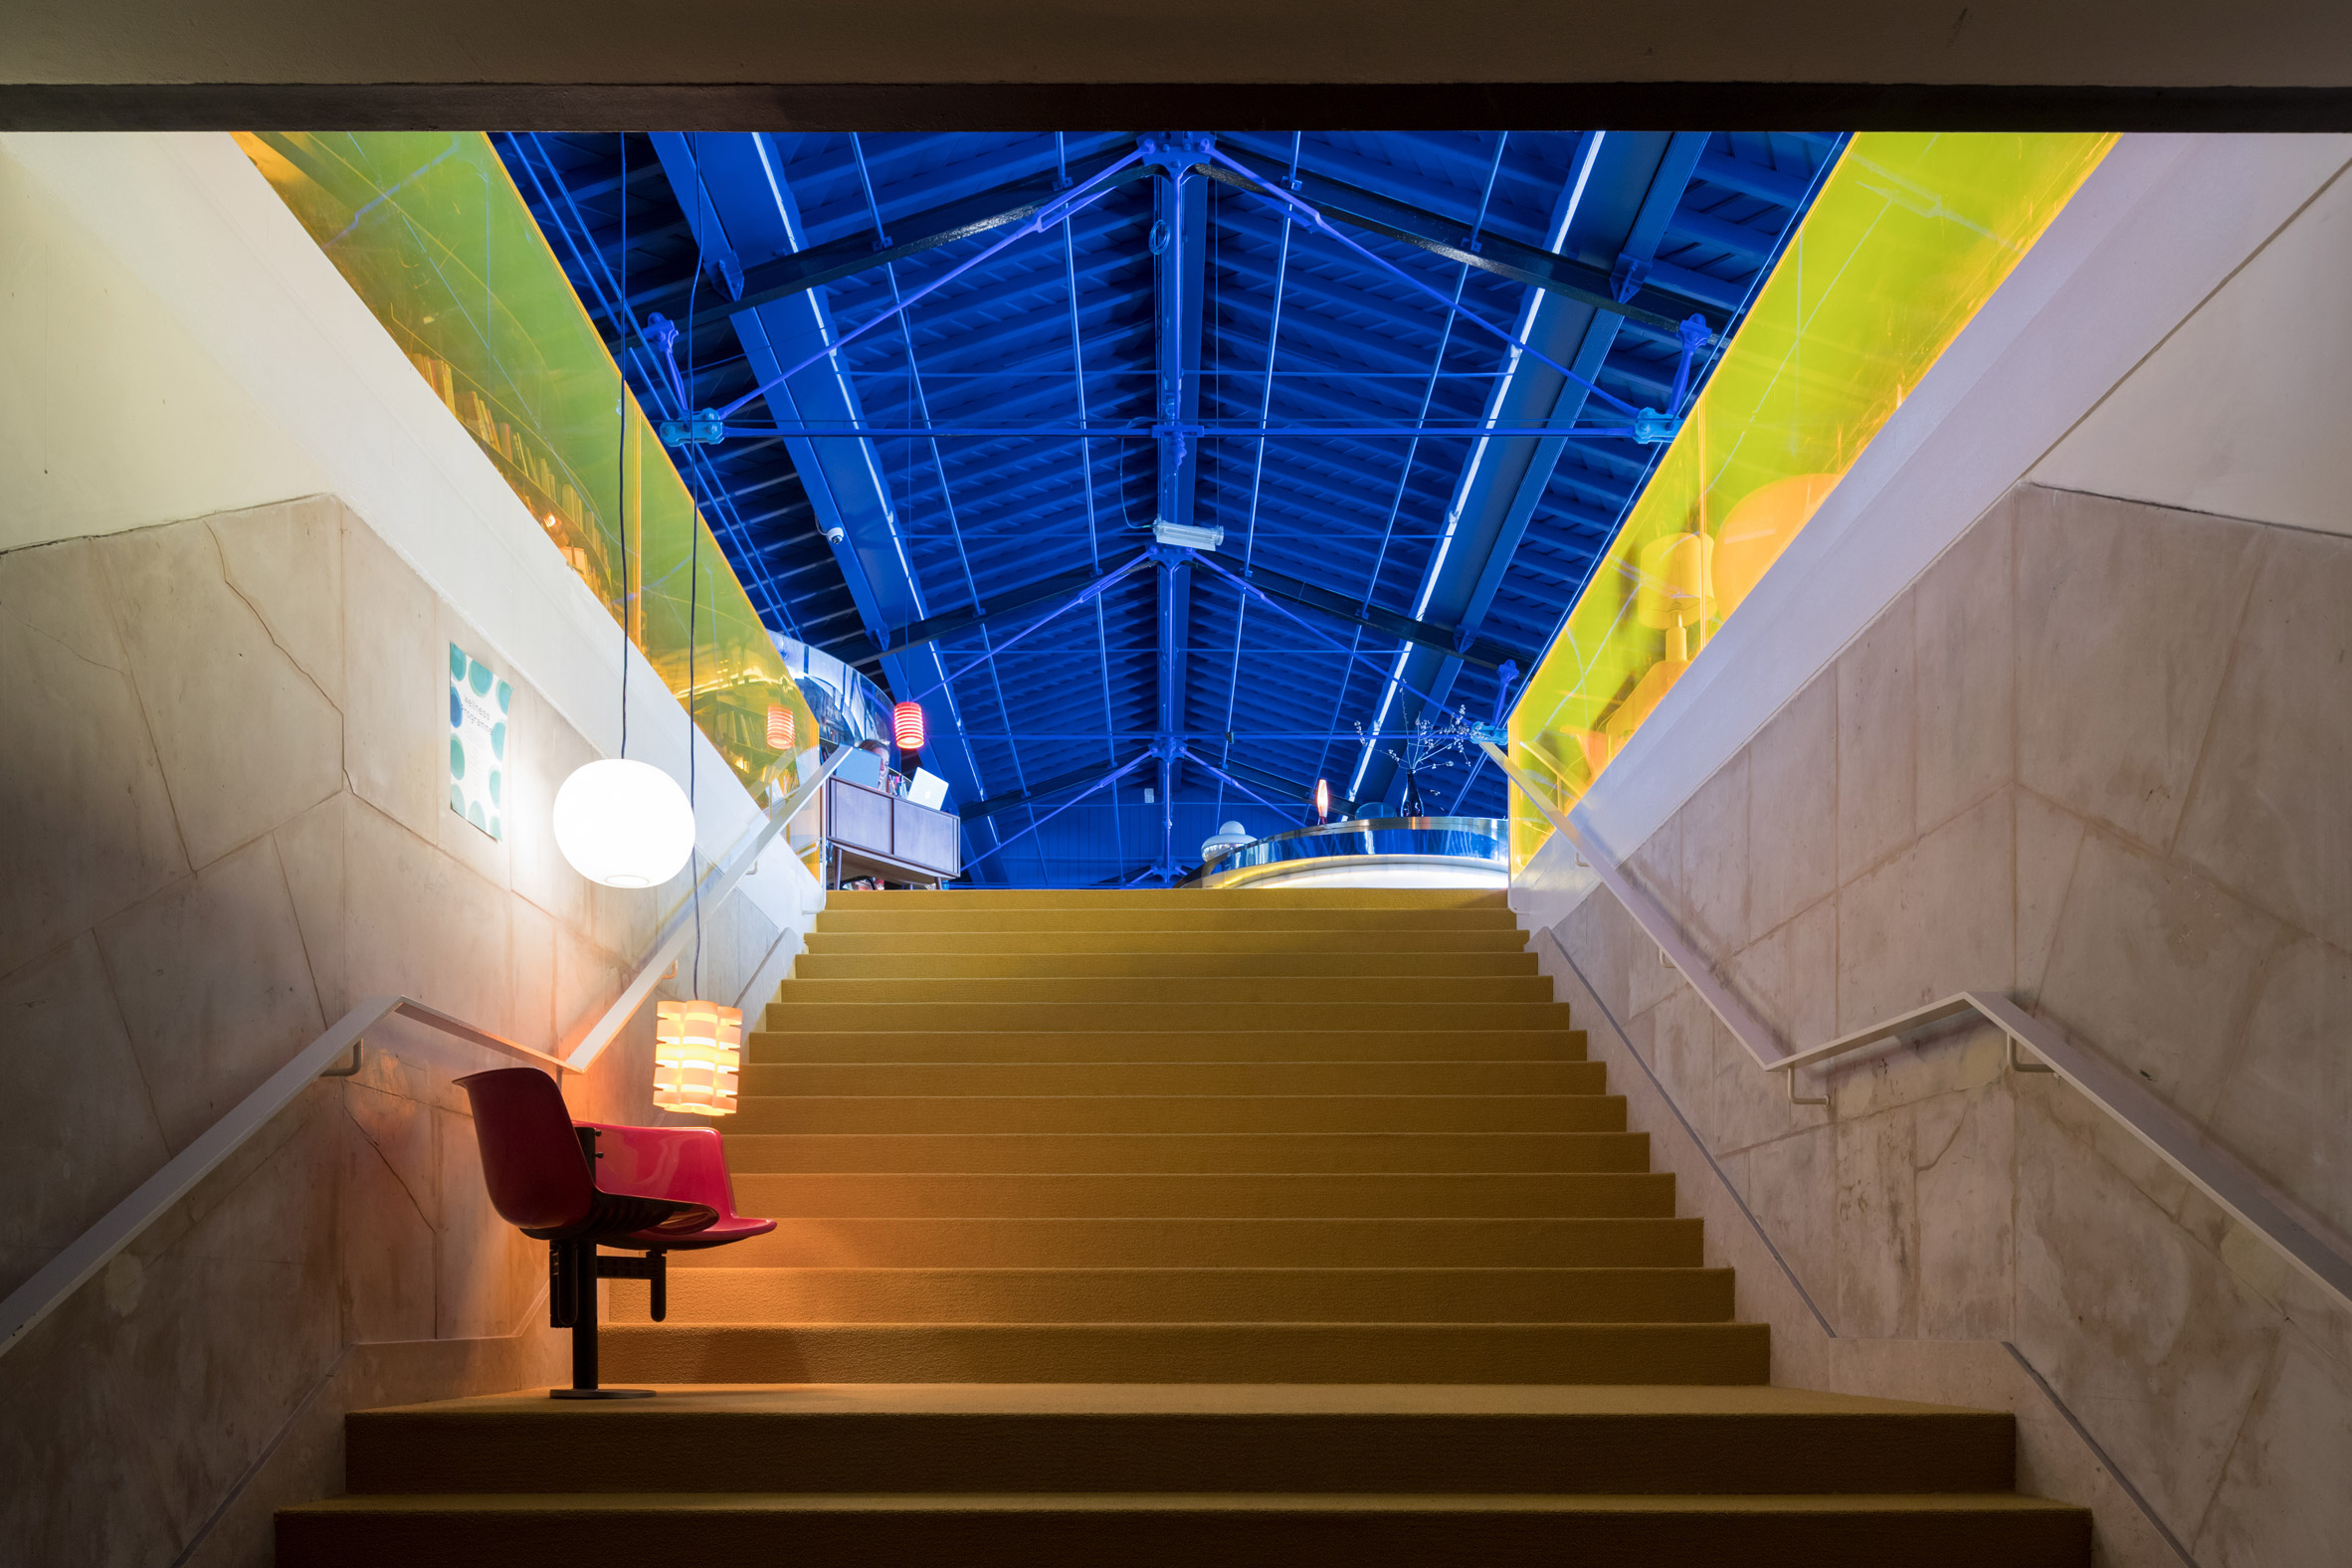 second-home-lisboa-selgascano-interiors-offices-lisbon-co-working_dezeen_2364_col_2.jpg